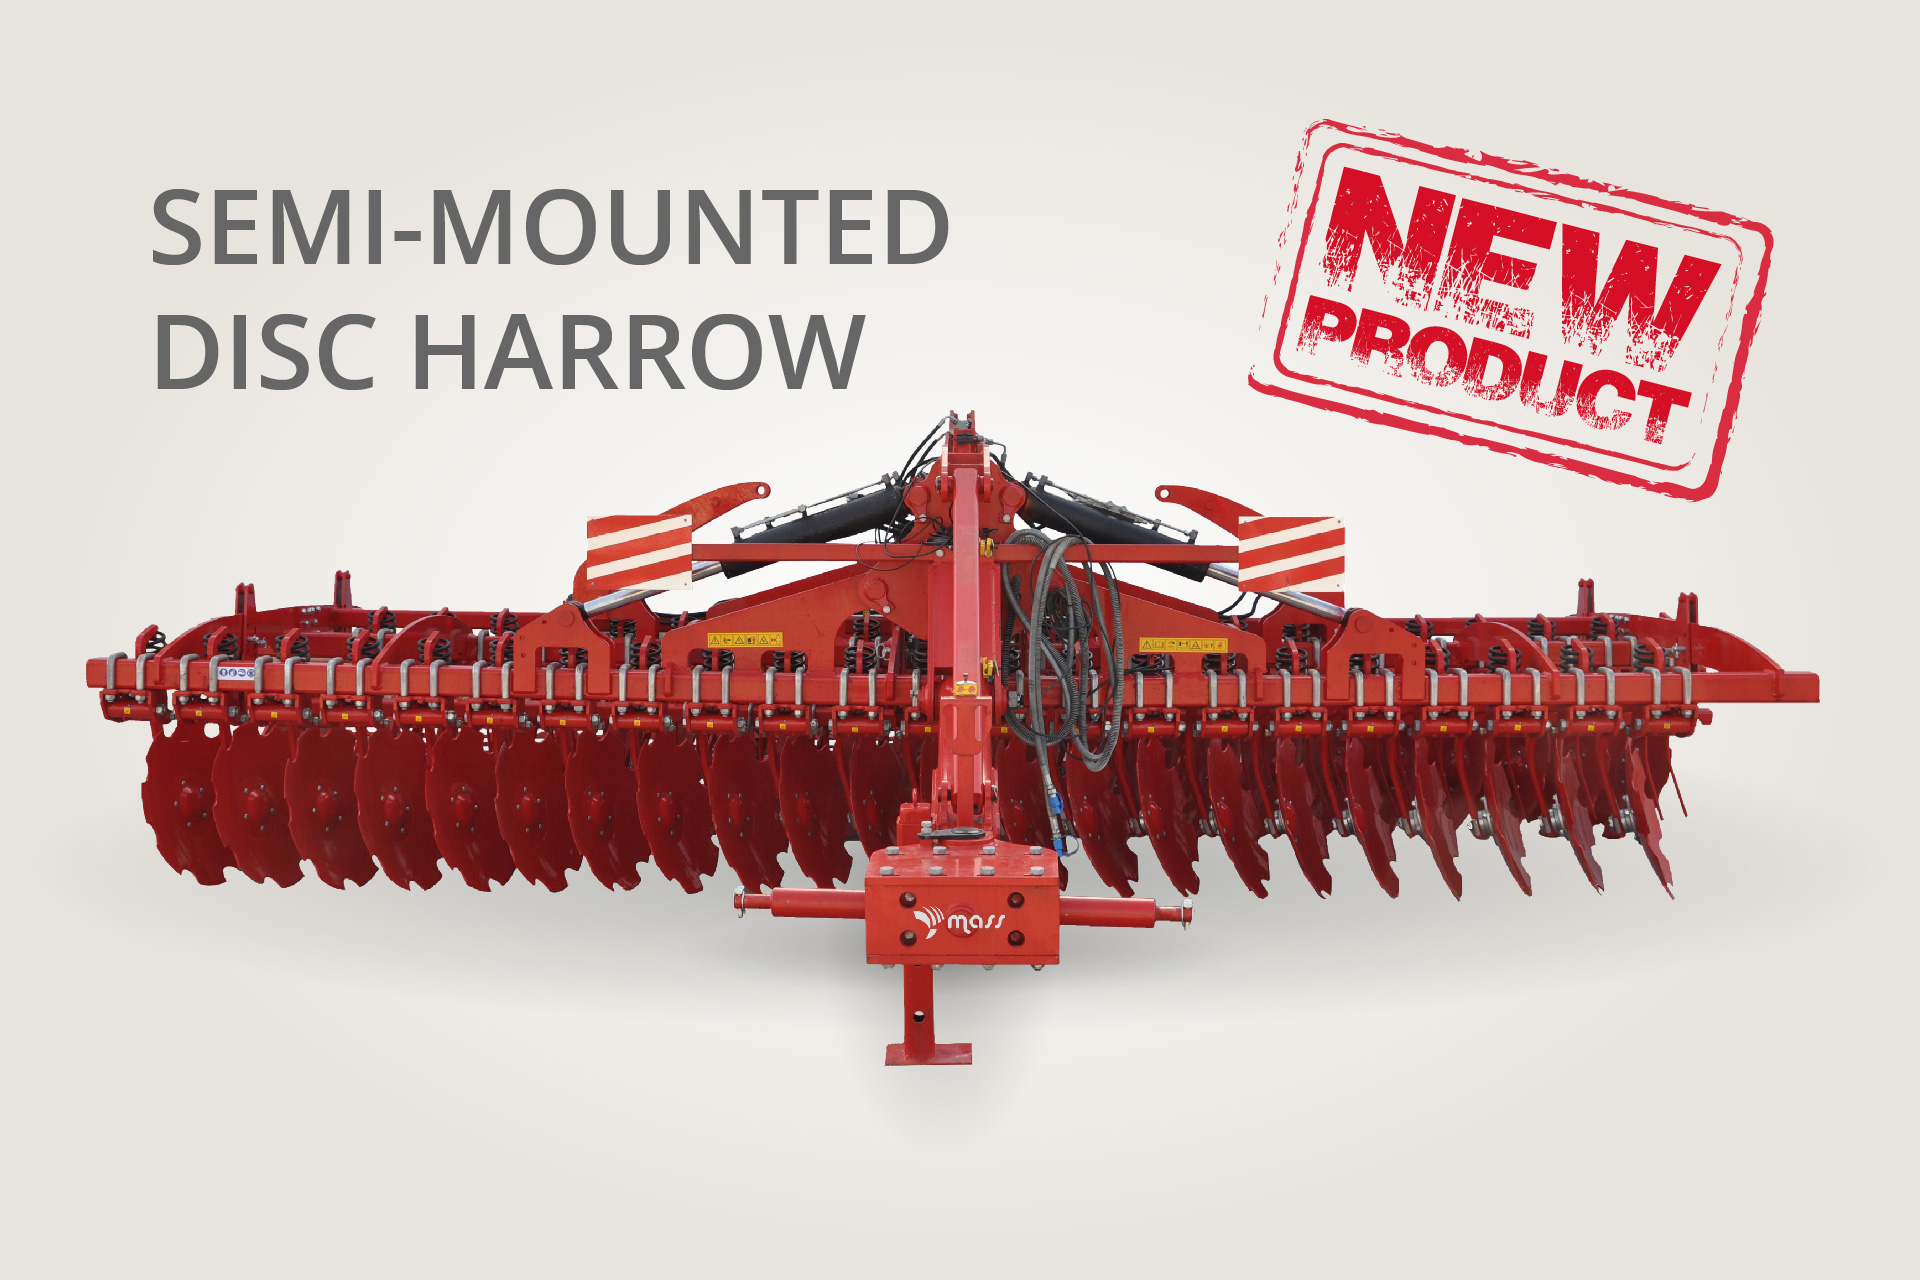 Semi-Mounted Disc Harrow